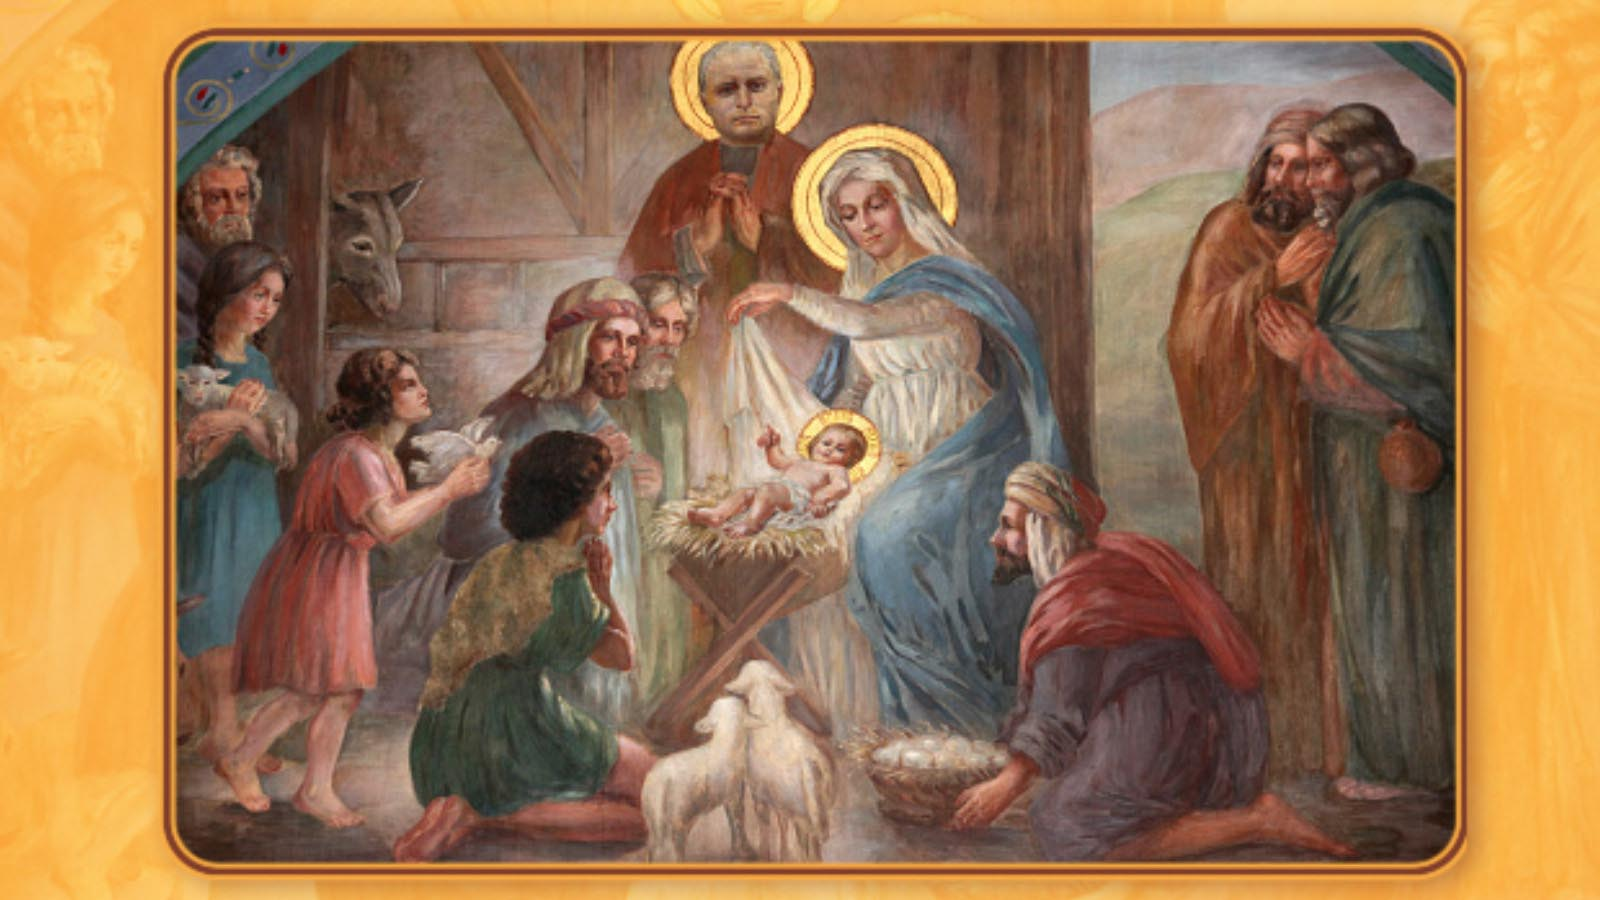 St. Francis Is Credited With Creating the First Nativity Scene In 1223